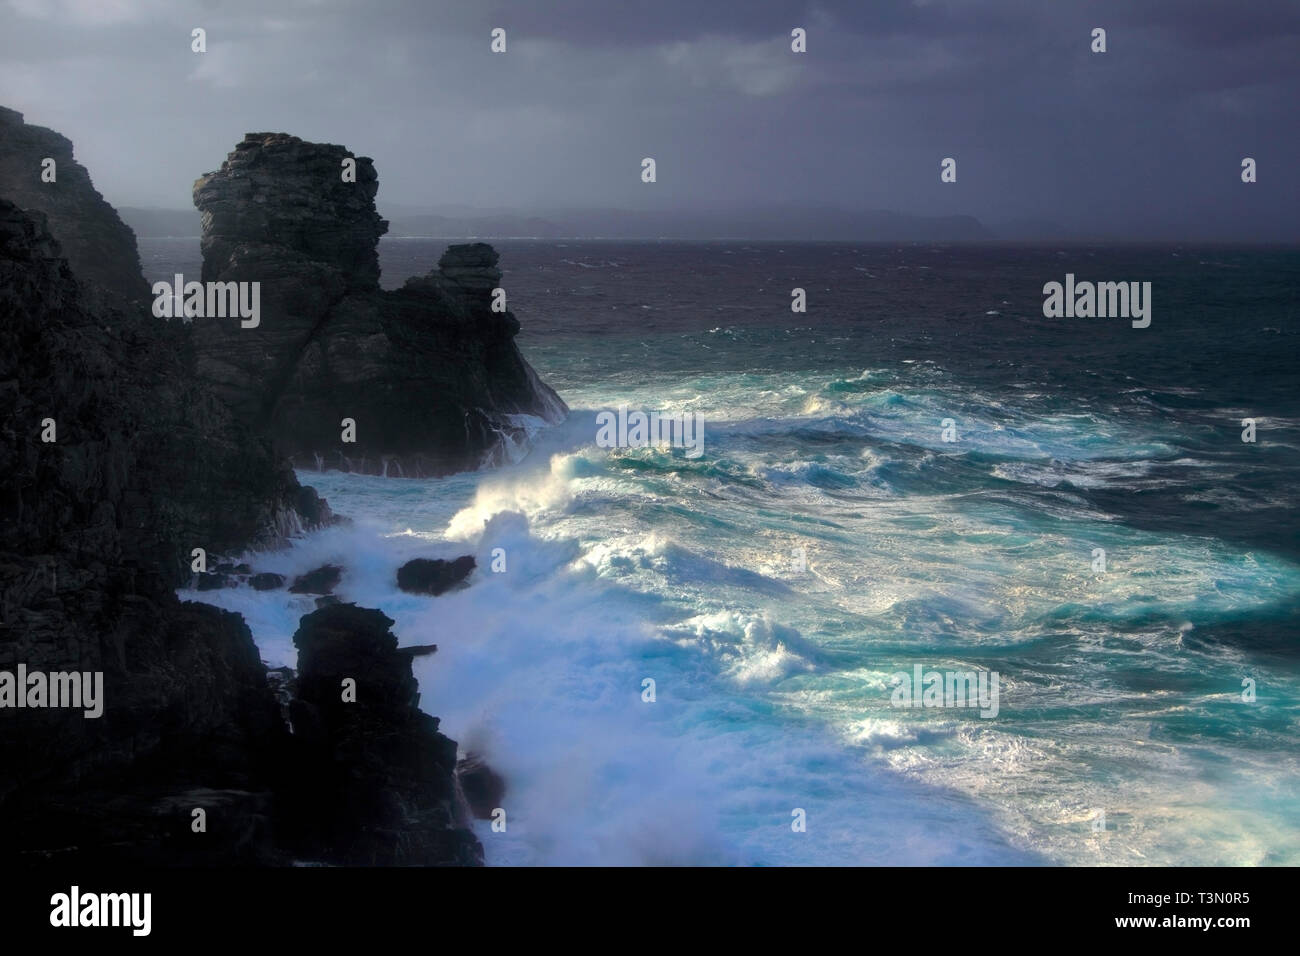 The rocky coast of Capo Falcone during a storm. Capo Falcone is a rocky promontory at the north-western tip of Sardinia, Italy, right in face of the I - Stock Image